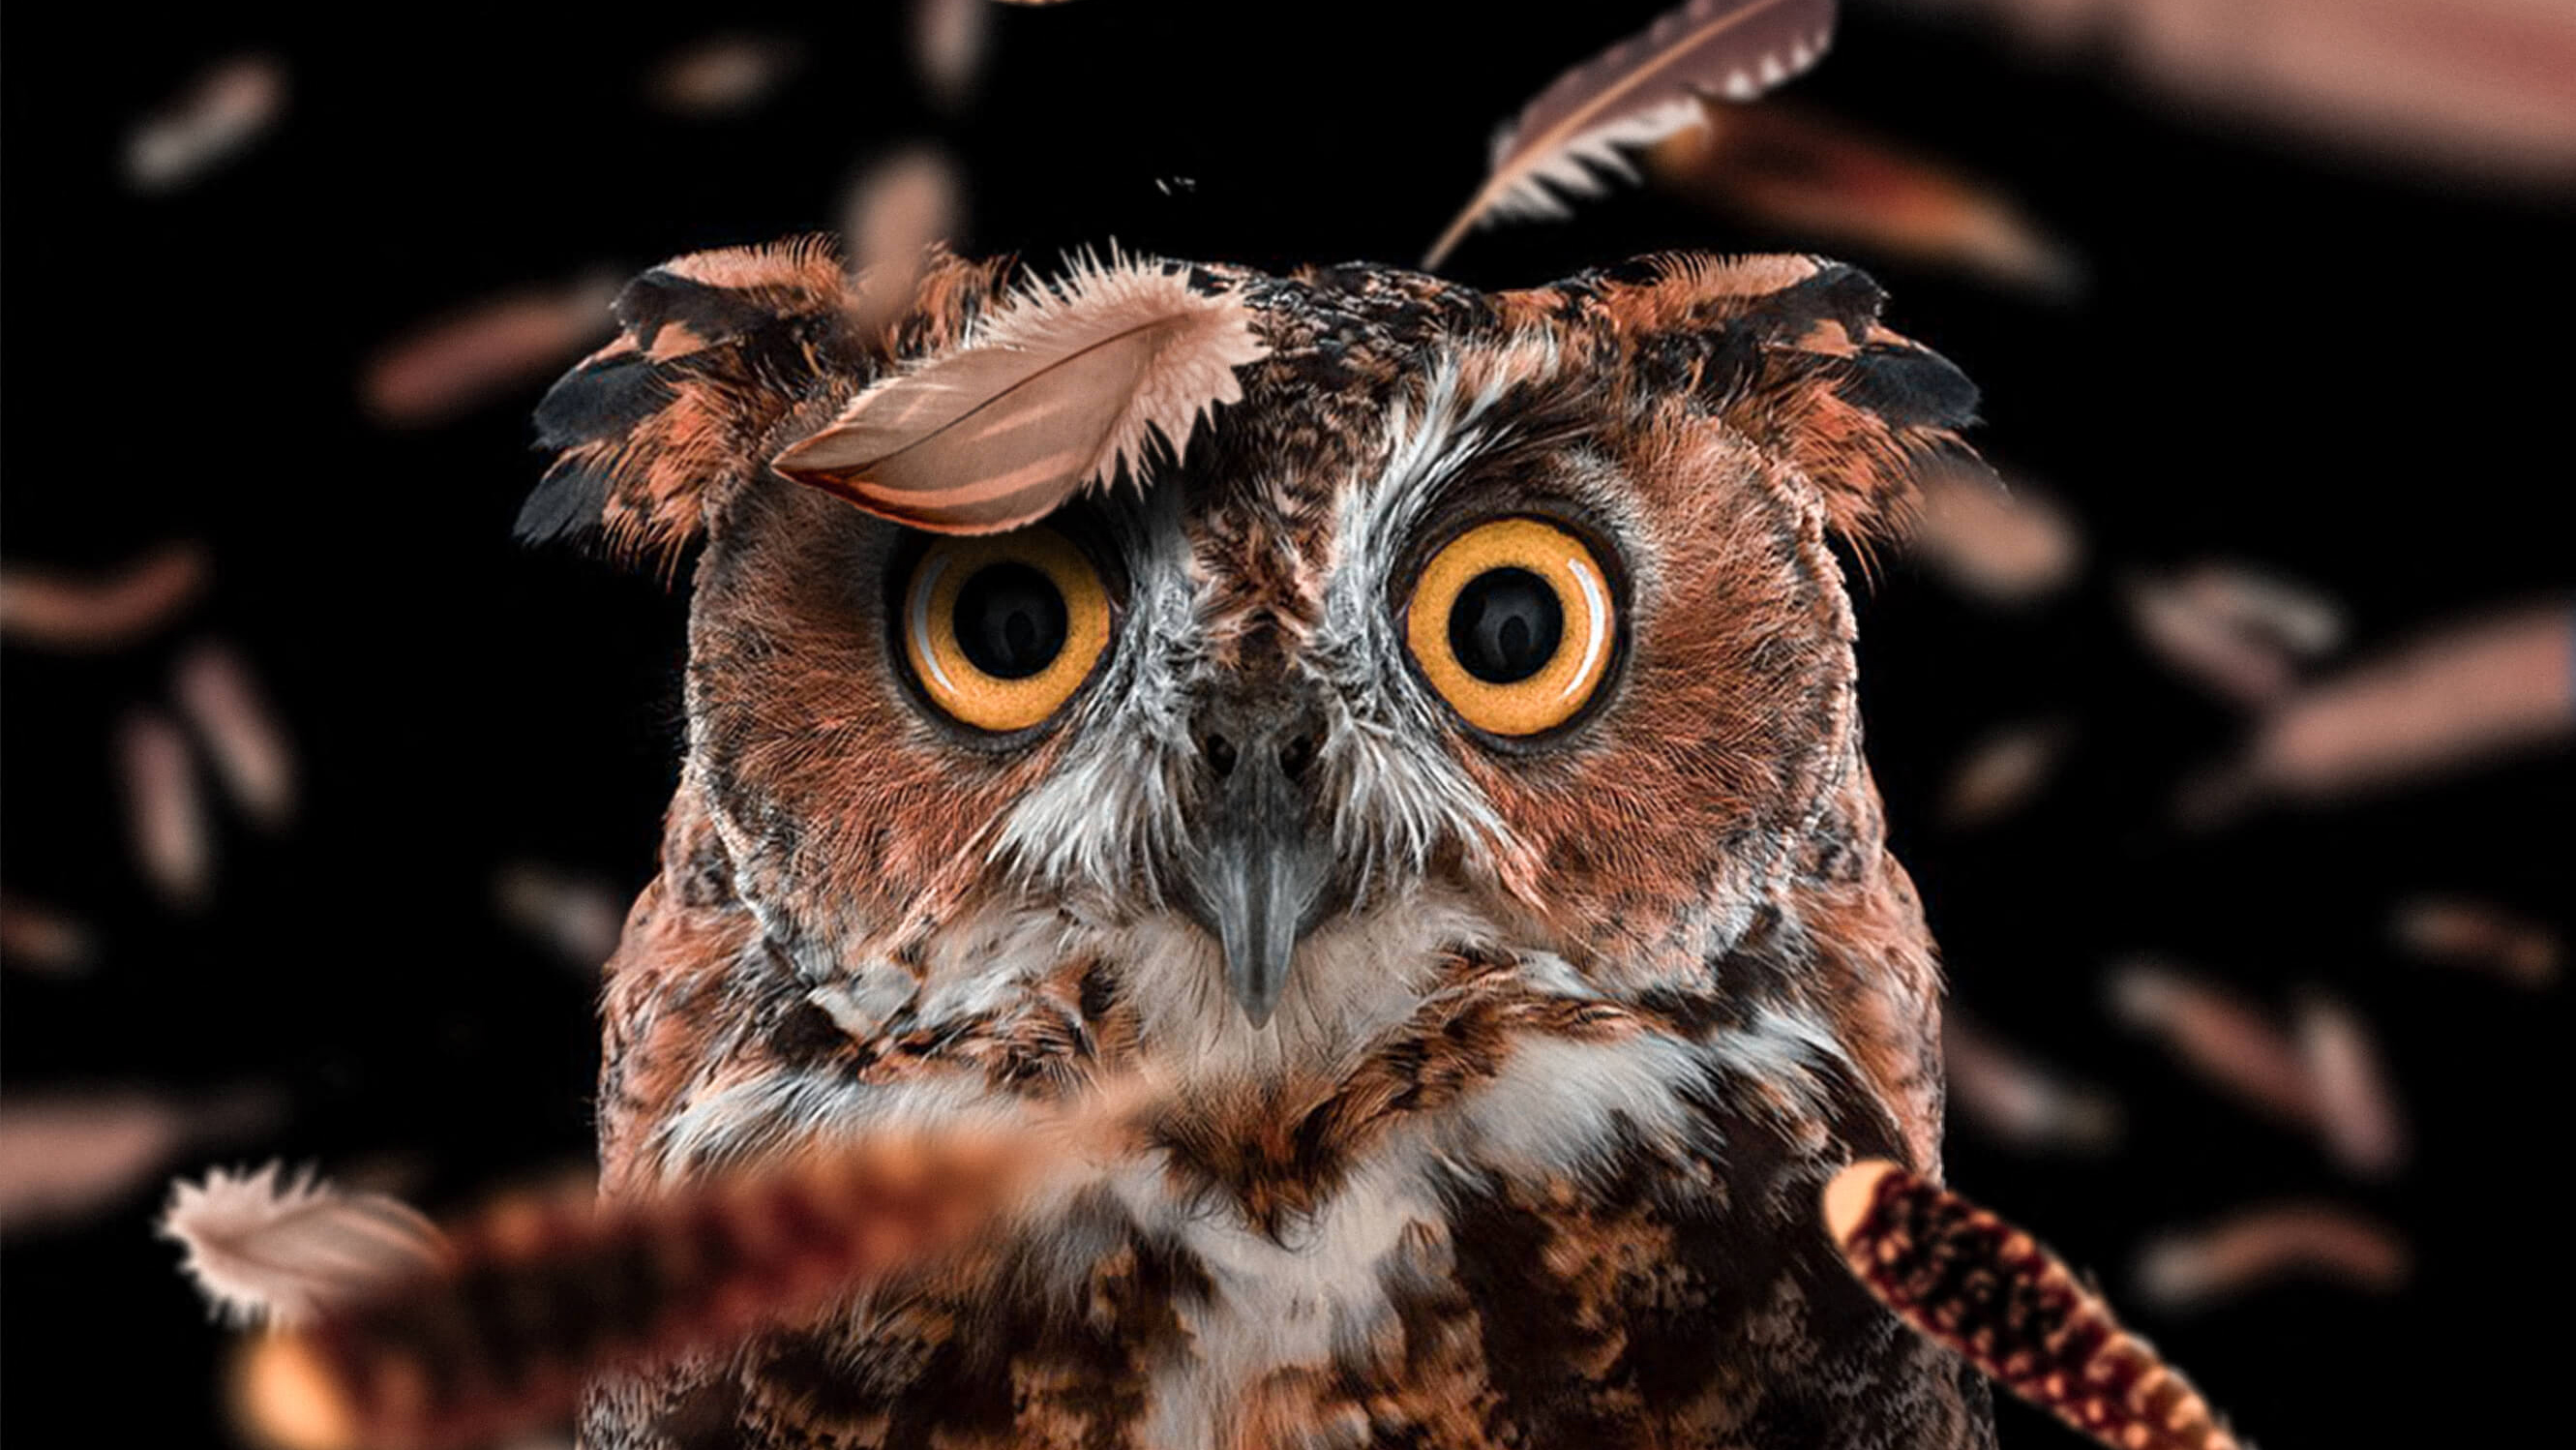 Curious Owl, HD Birds, 4k Wallpapers, Images, Backgrounds ...